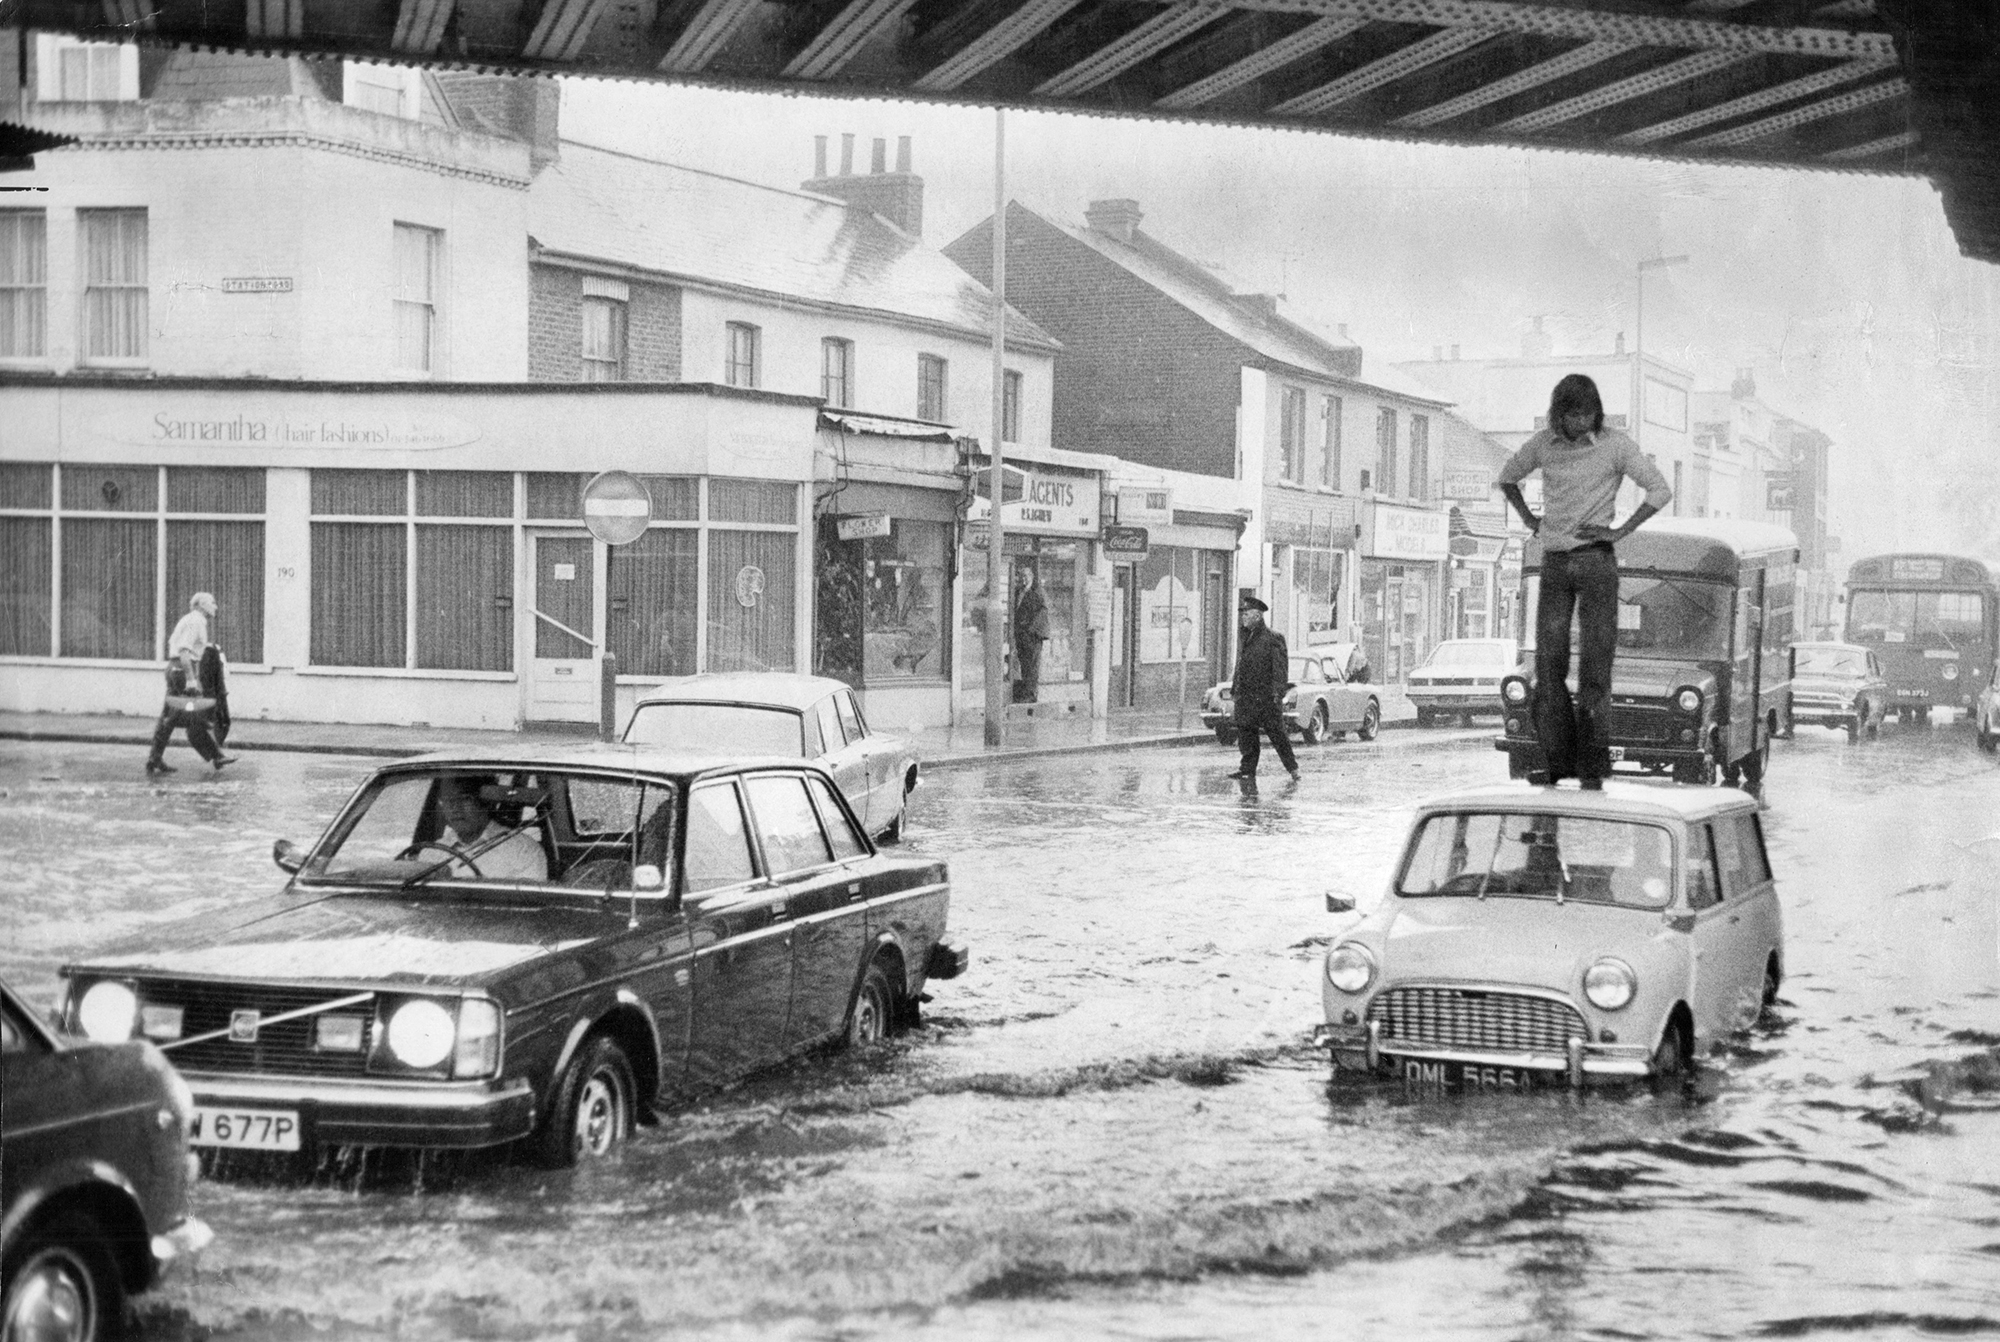 Kingston flooded in 1976, when severe drought was followed by twice the average rainfall. Photo: Rex